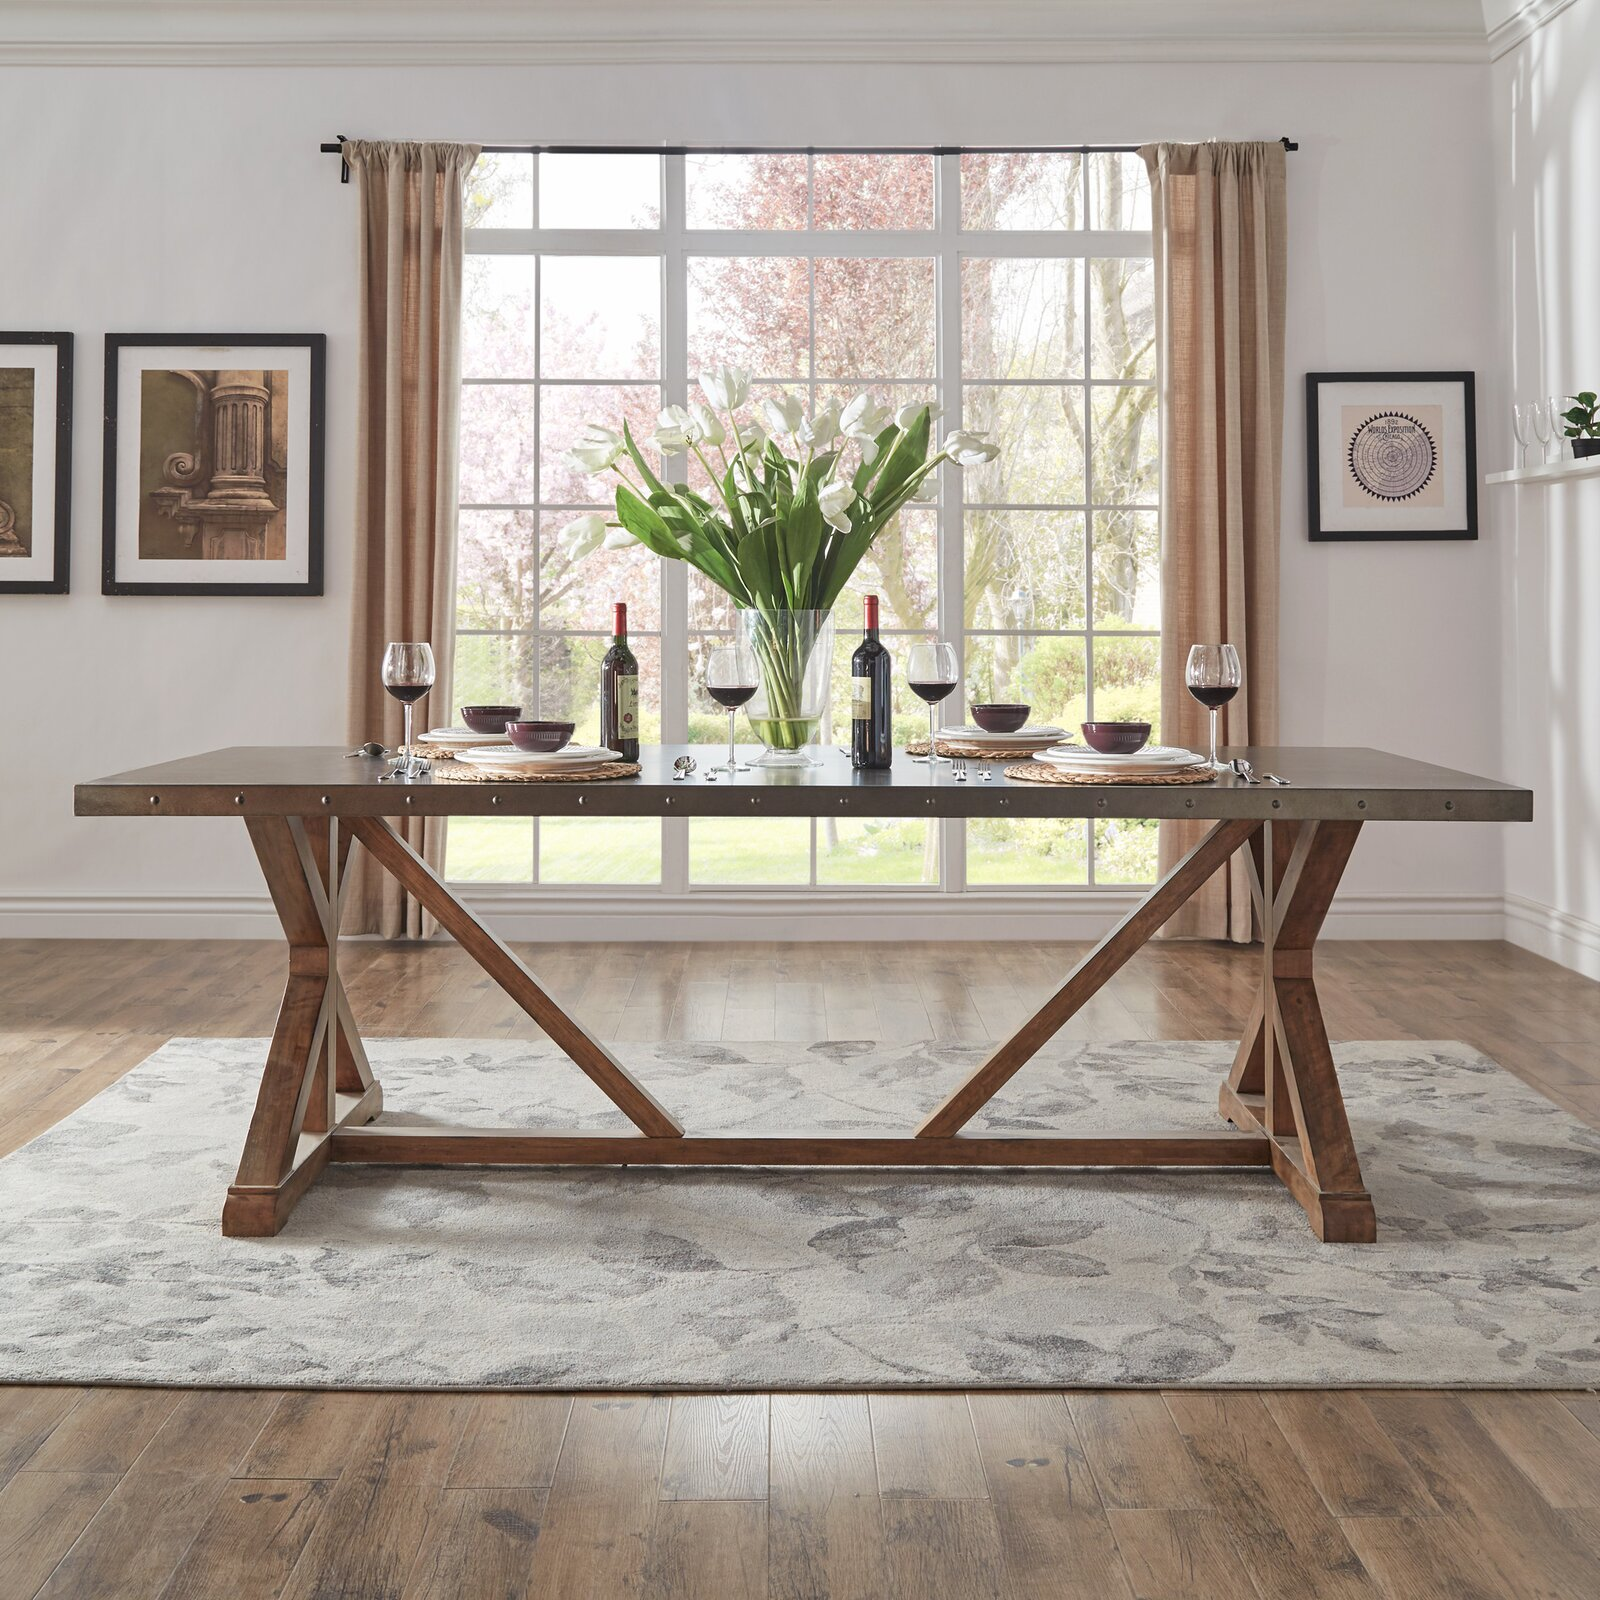 farmhouse-dining-room-table-with-stainless-steel-tabletop-unique-95-inch-seats-10-guests-rustic-industrial-furniture